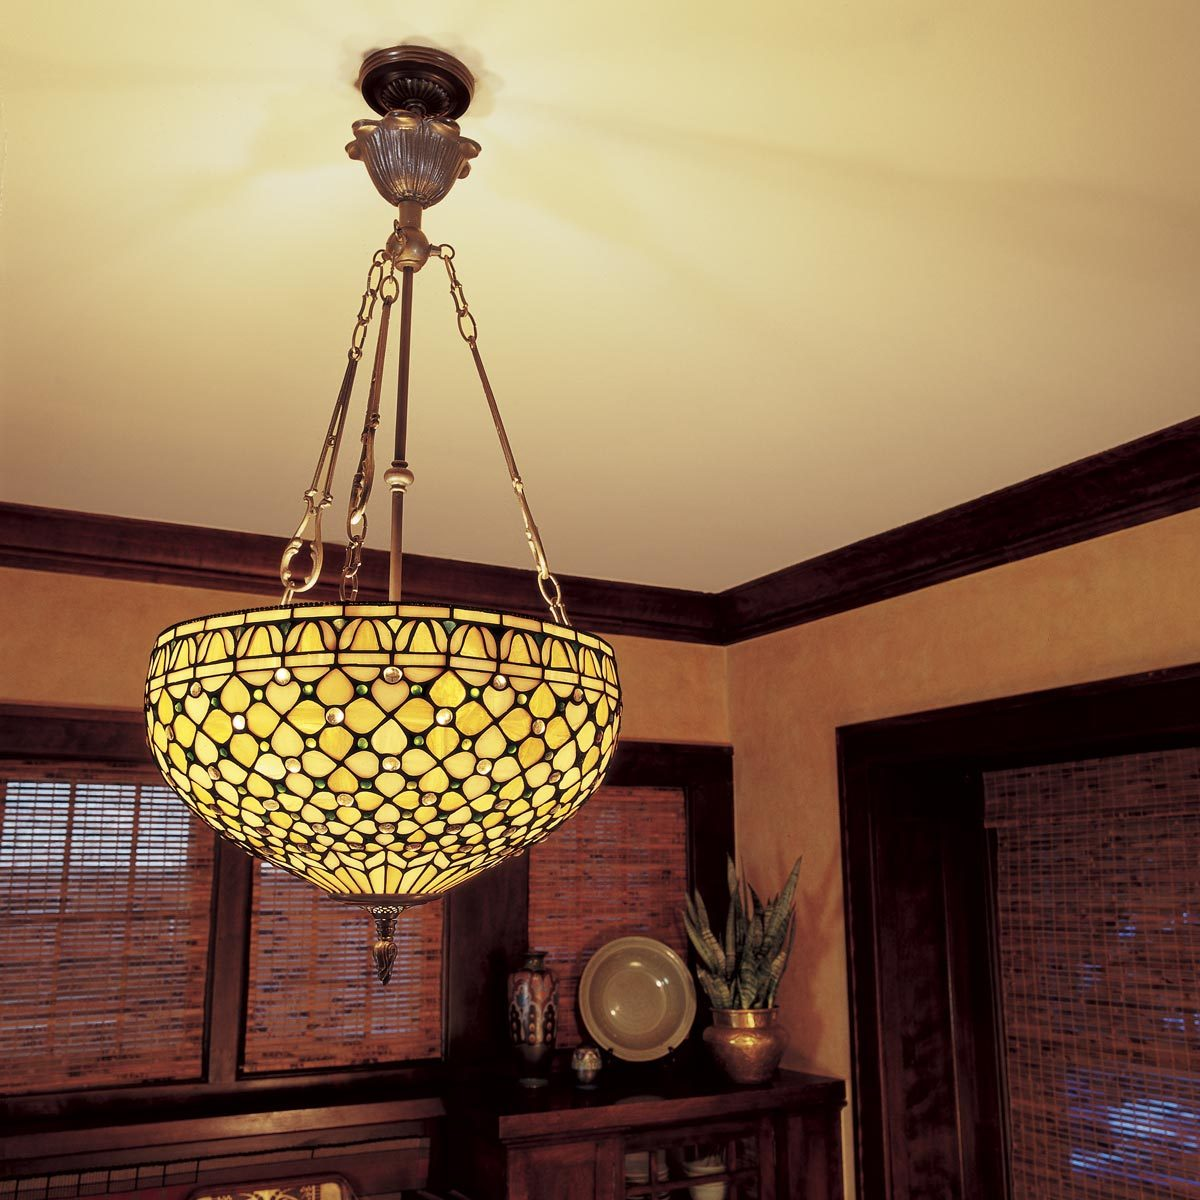 How To Hang A Ceiling Light Fixture Diy Family Handyman